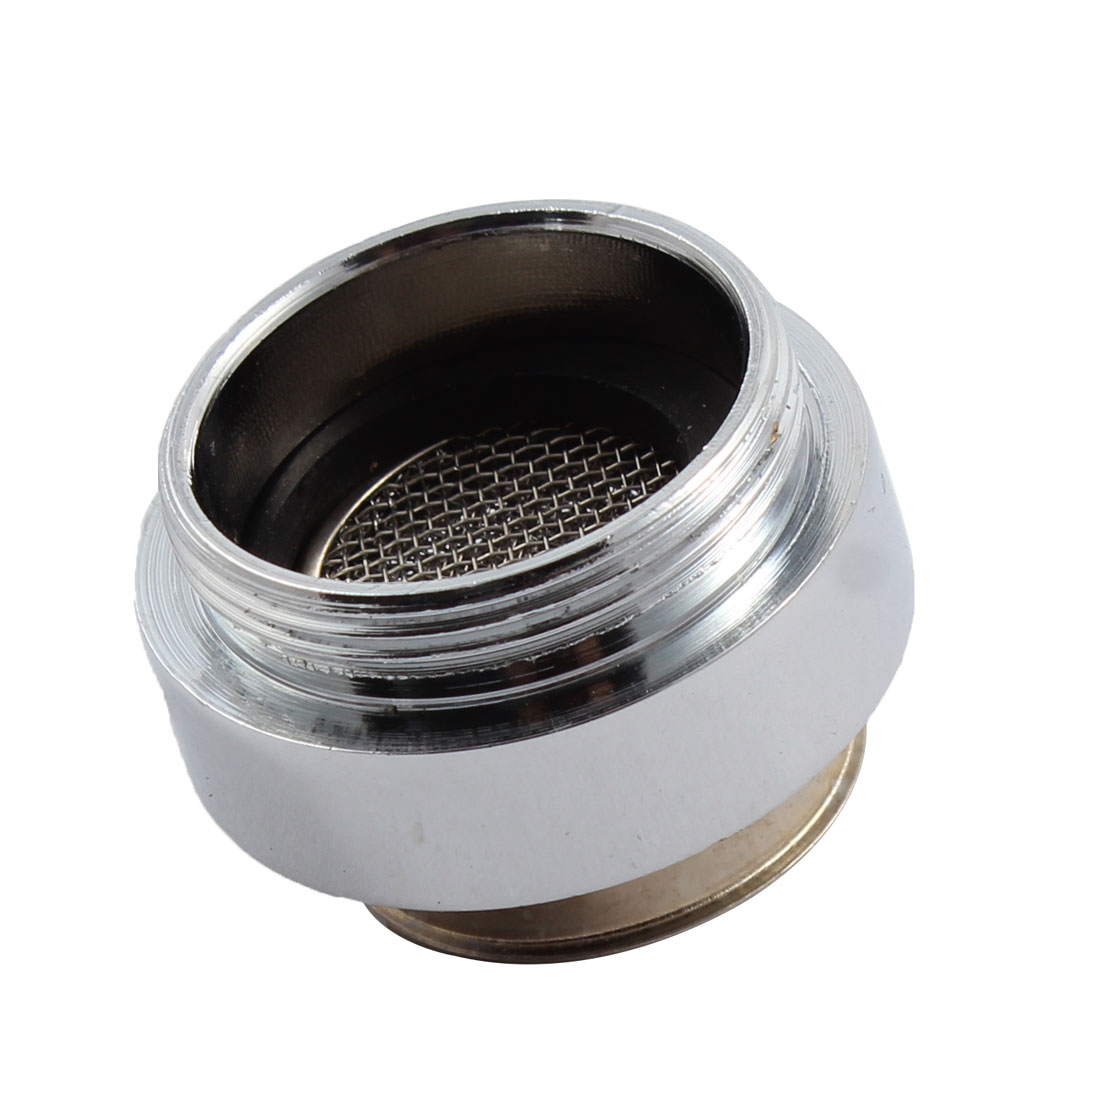 Household Metal Male Thread Water Faucet Tap Filtering Net Spout ...